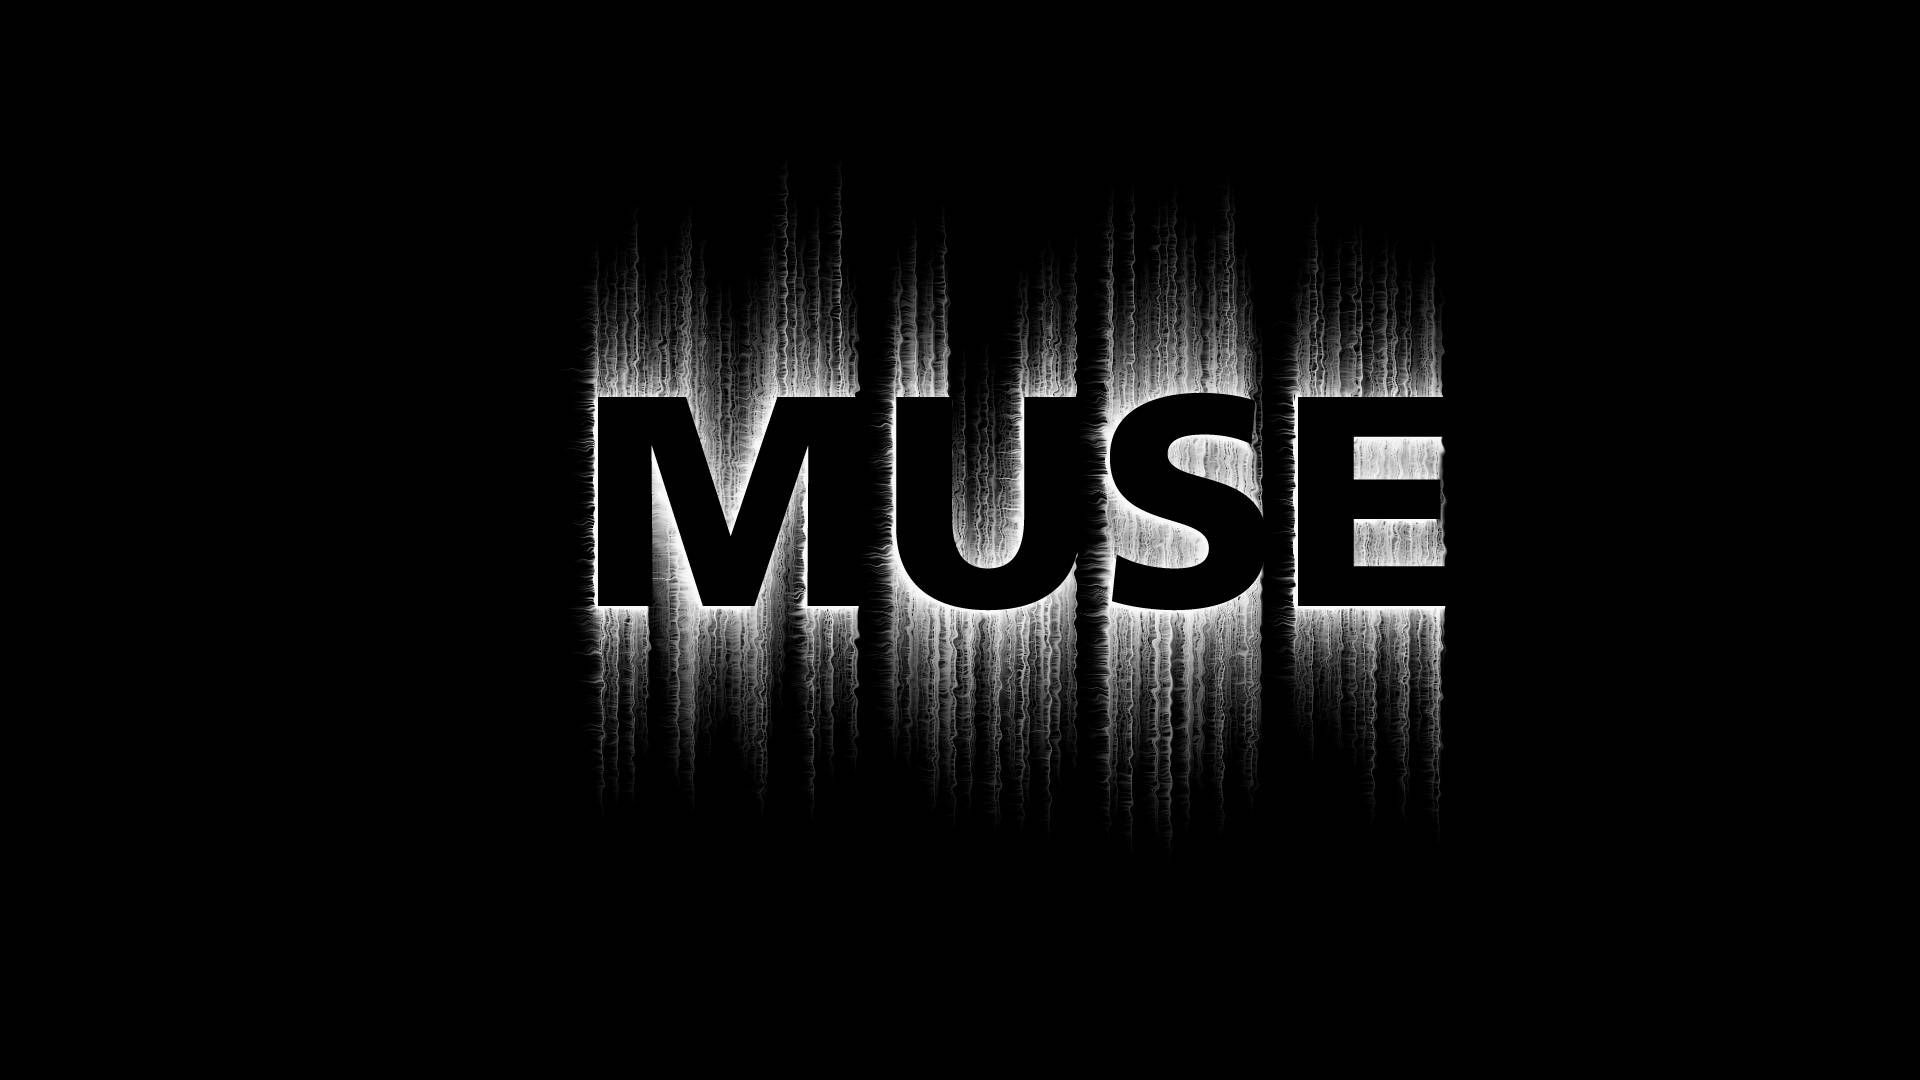 Muse wallpaper background